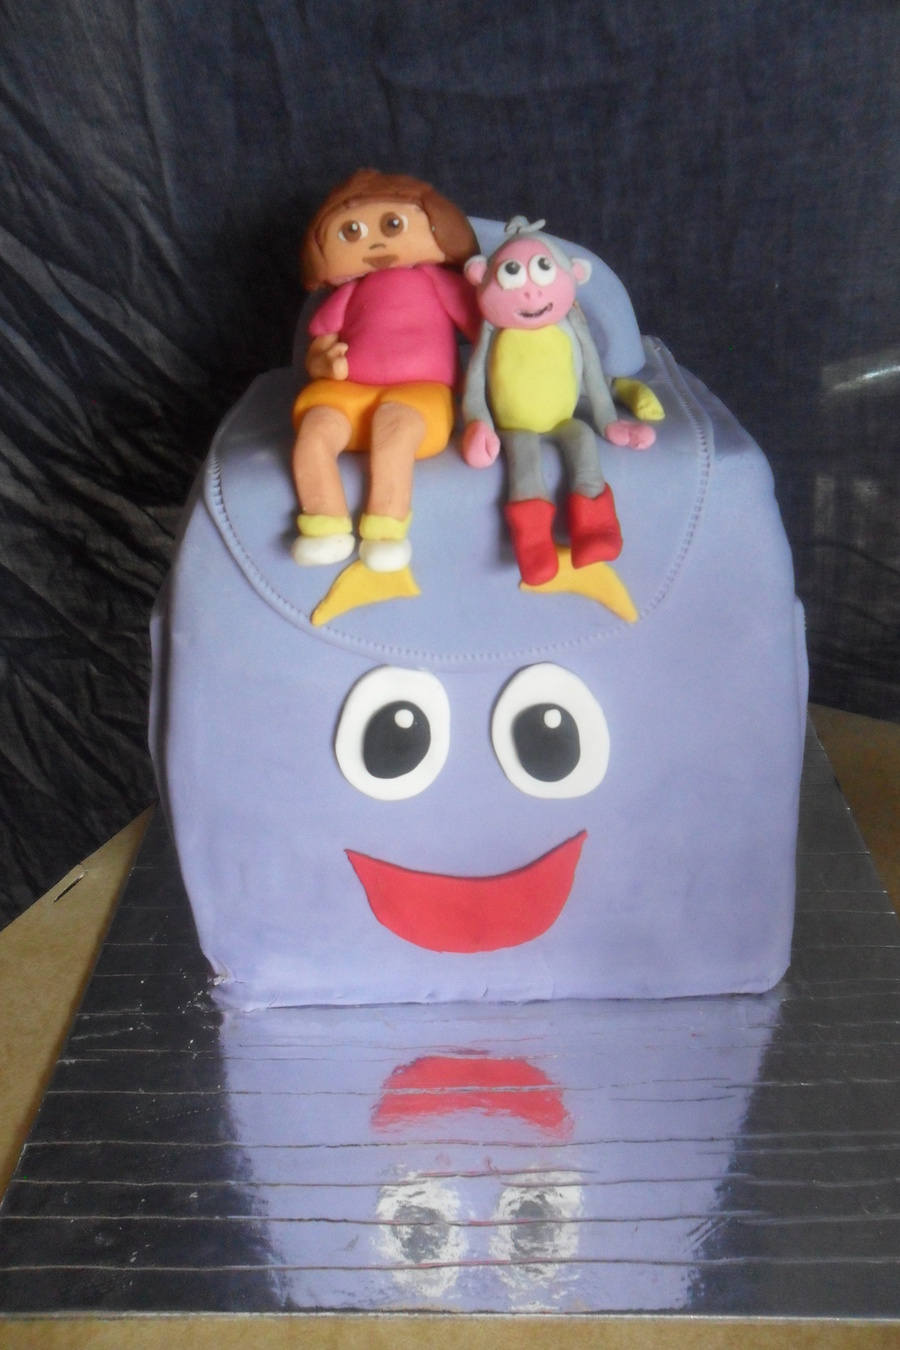 Dora Dora Dora The Explorer With Her Friends Boots Amp Backpack For My Nieces 3Rd Birthday  on Cake Central